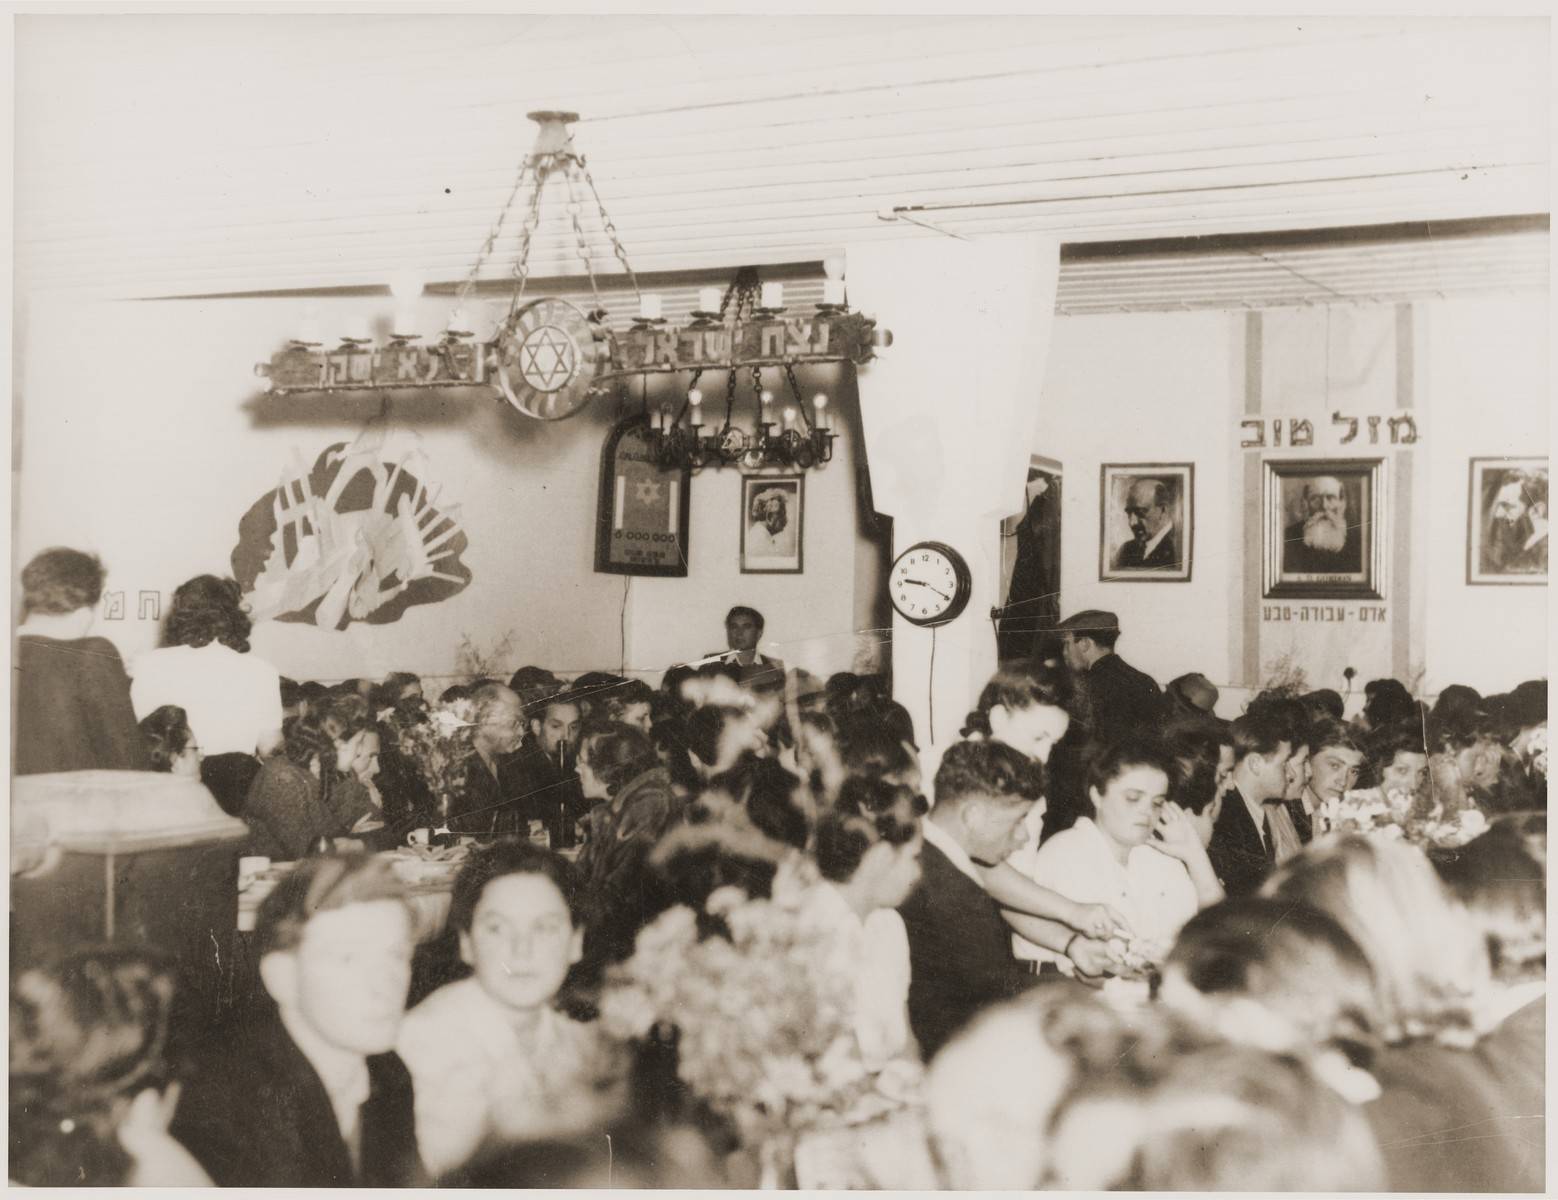 Members of the Kibbutz Nili hachshara (Zionist collective) in Pleikershof, Germany are gathered in the dining hall for a festive meal.   The room is decorated with portraits of Zionist leaders, including Herzl, Weizmann and A.D. Gordon, and the kibbutz motto.